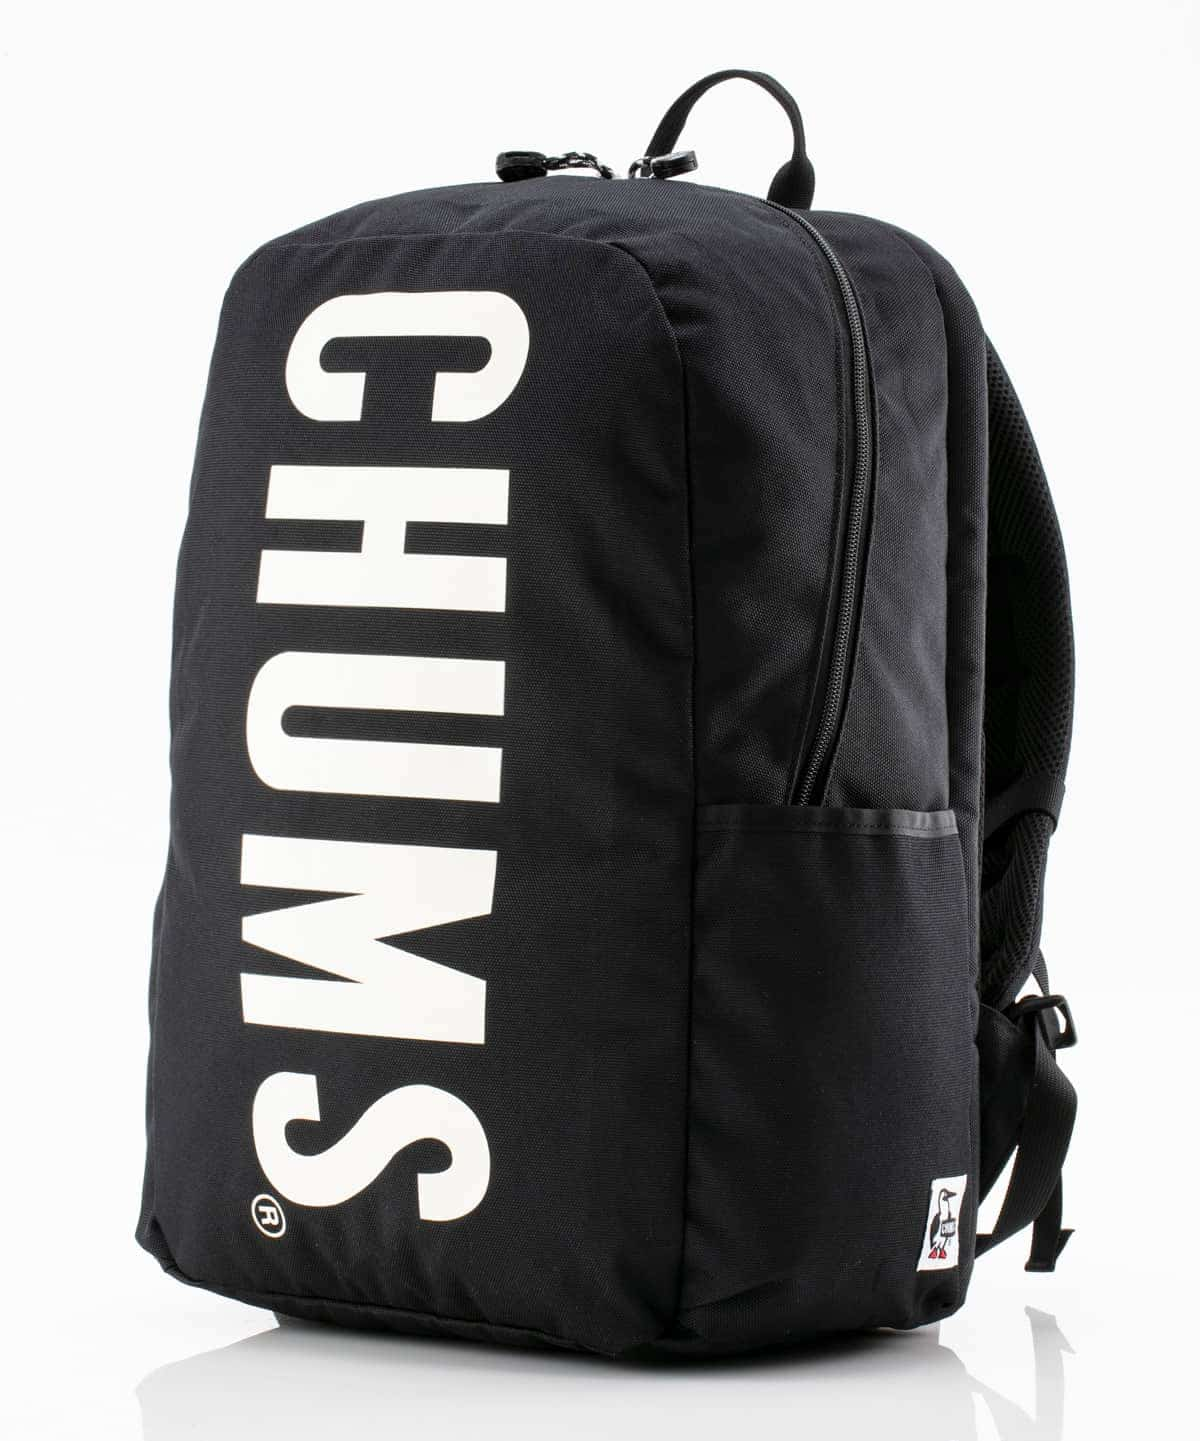 CHUMS Boat Logo Day Pack(【限定】チャムスボートロゴデイパック(デイパック|リュック))